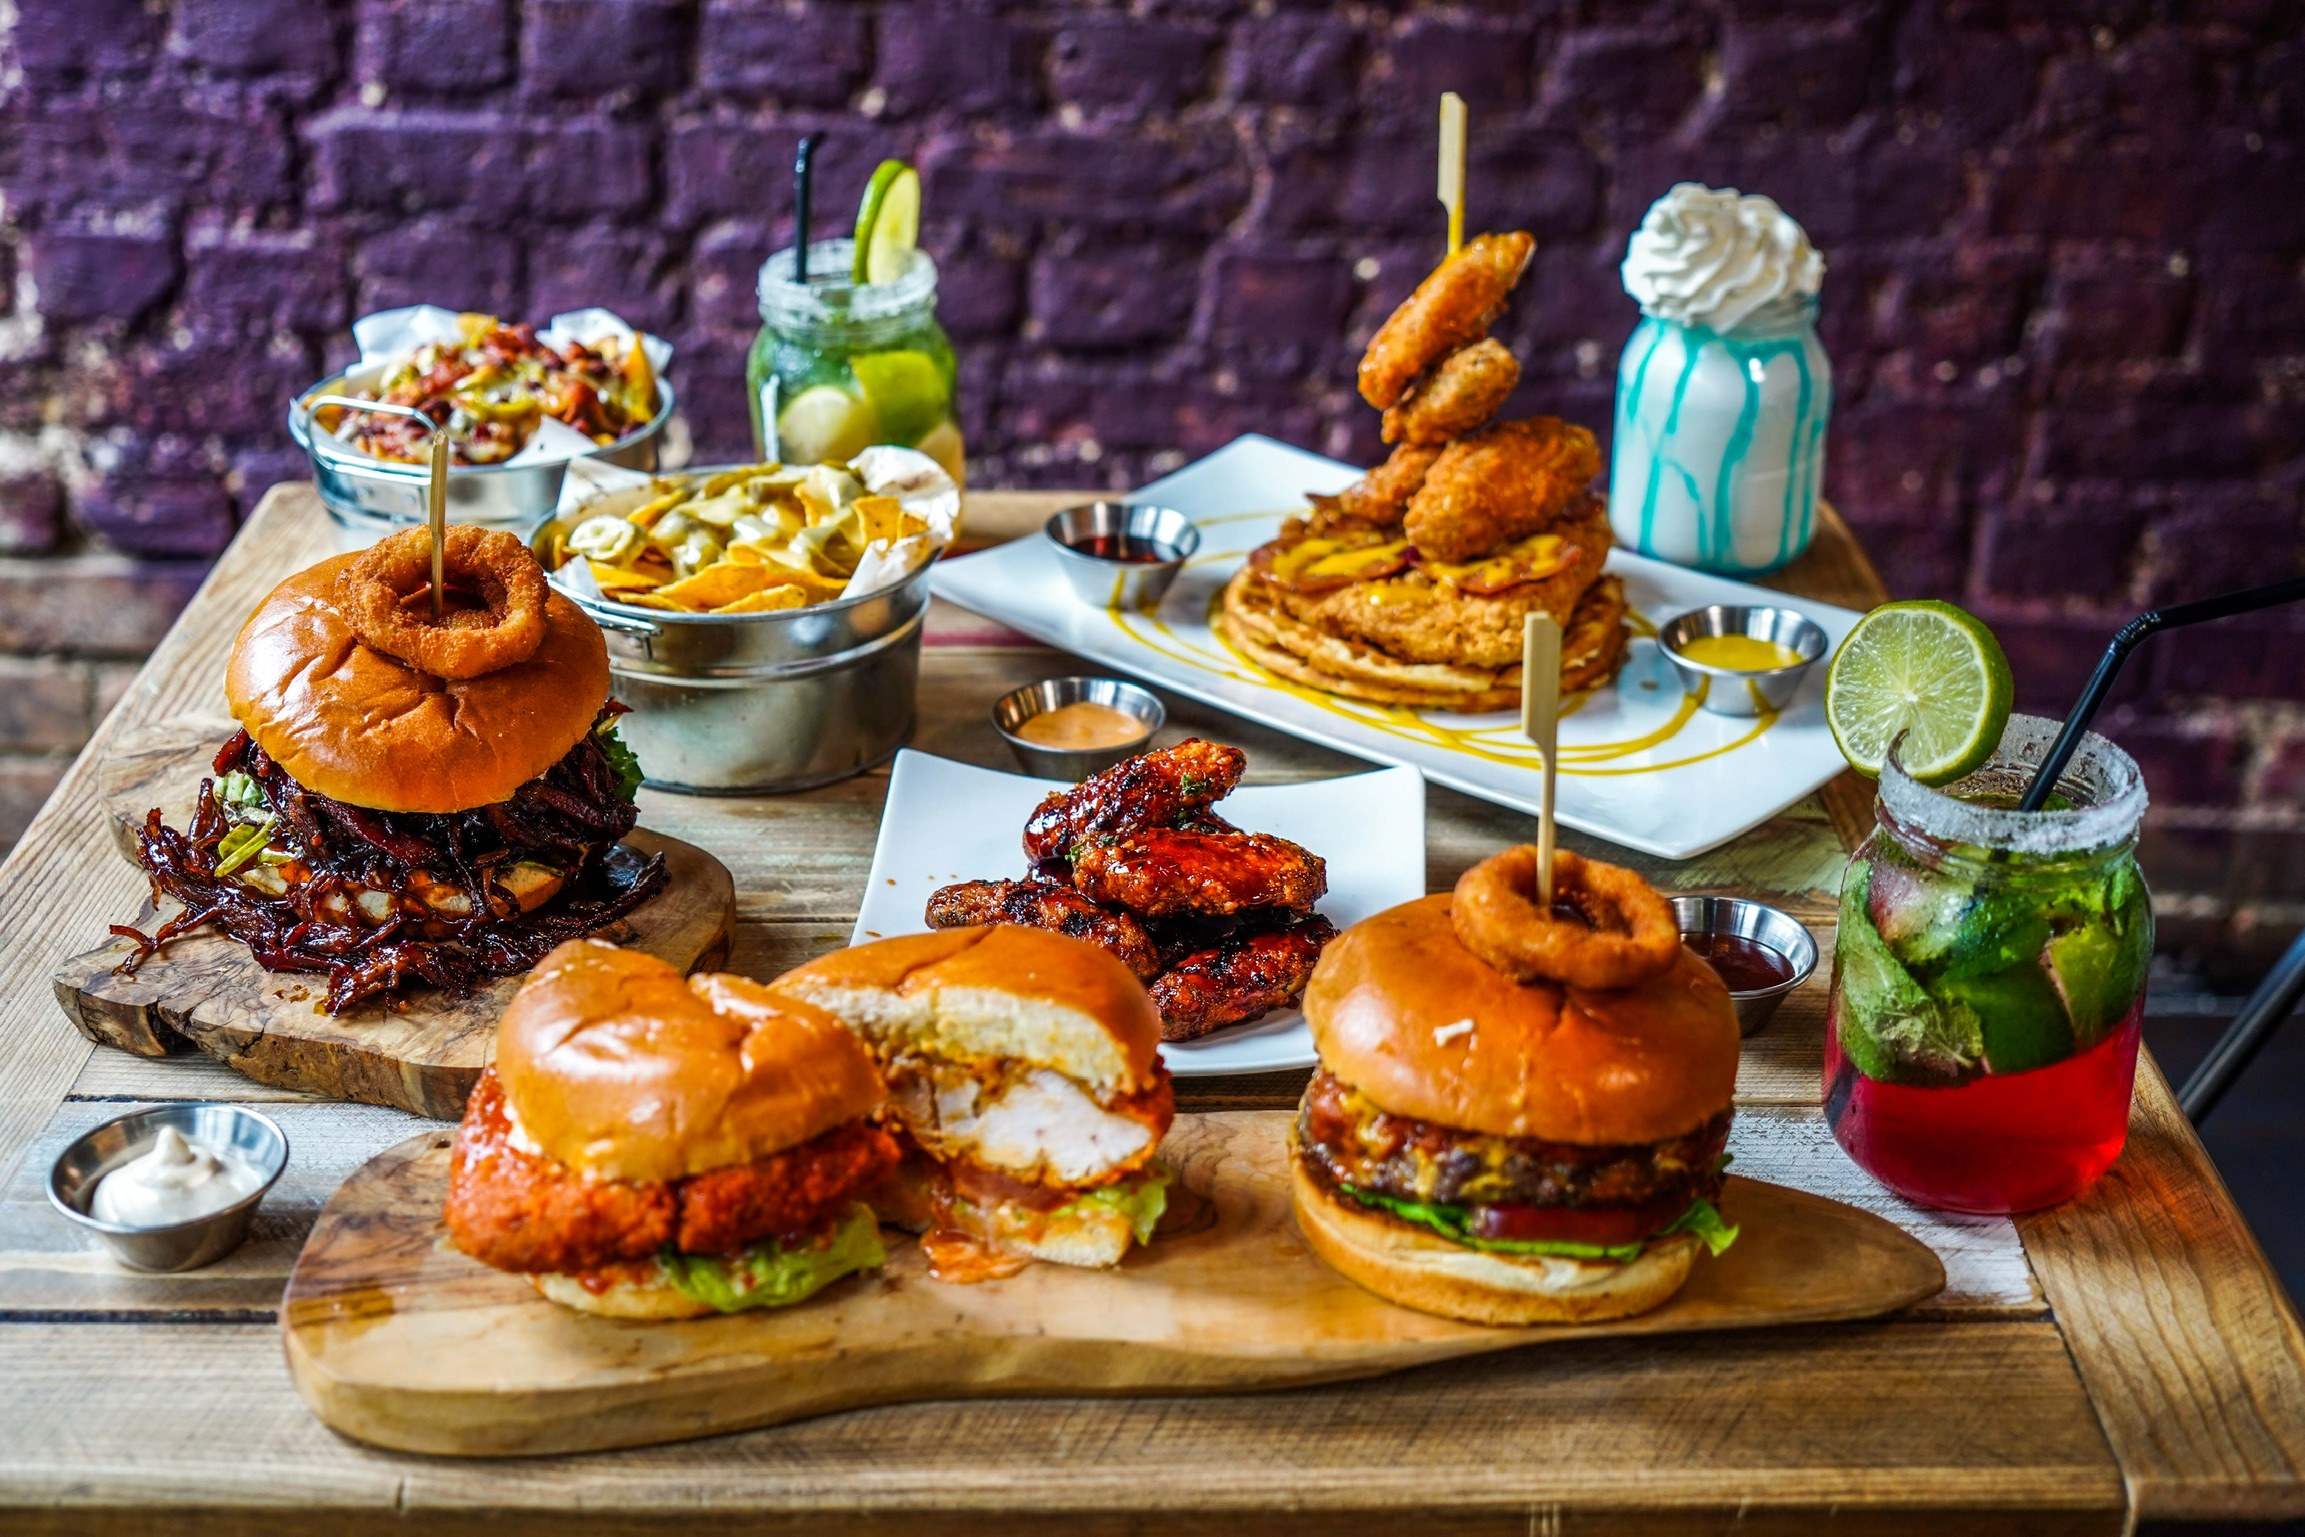 Loaded Gourmet Burgers and Fries Hayes Reopens with Exciting Growth Plans